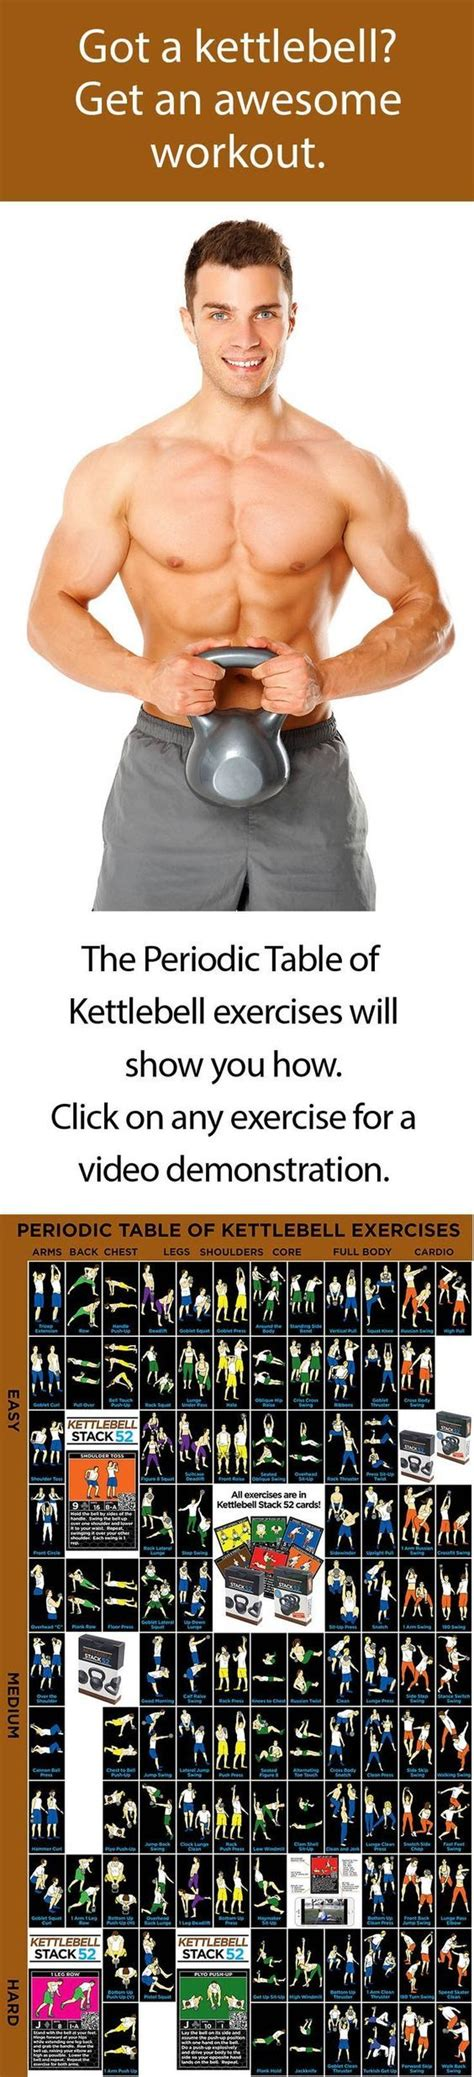 kettlebell workout exercises periodic table strength interval